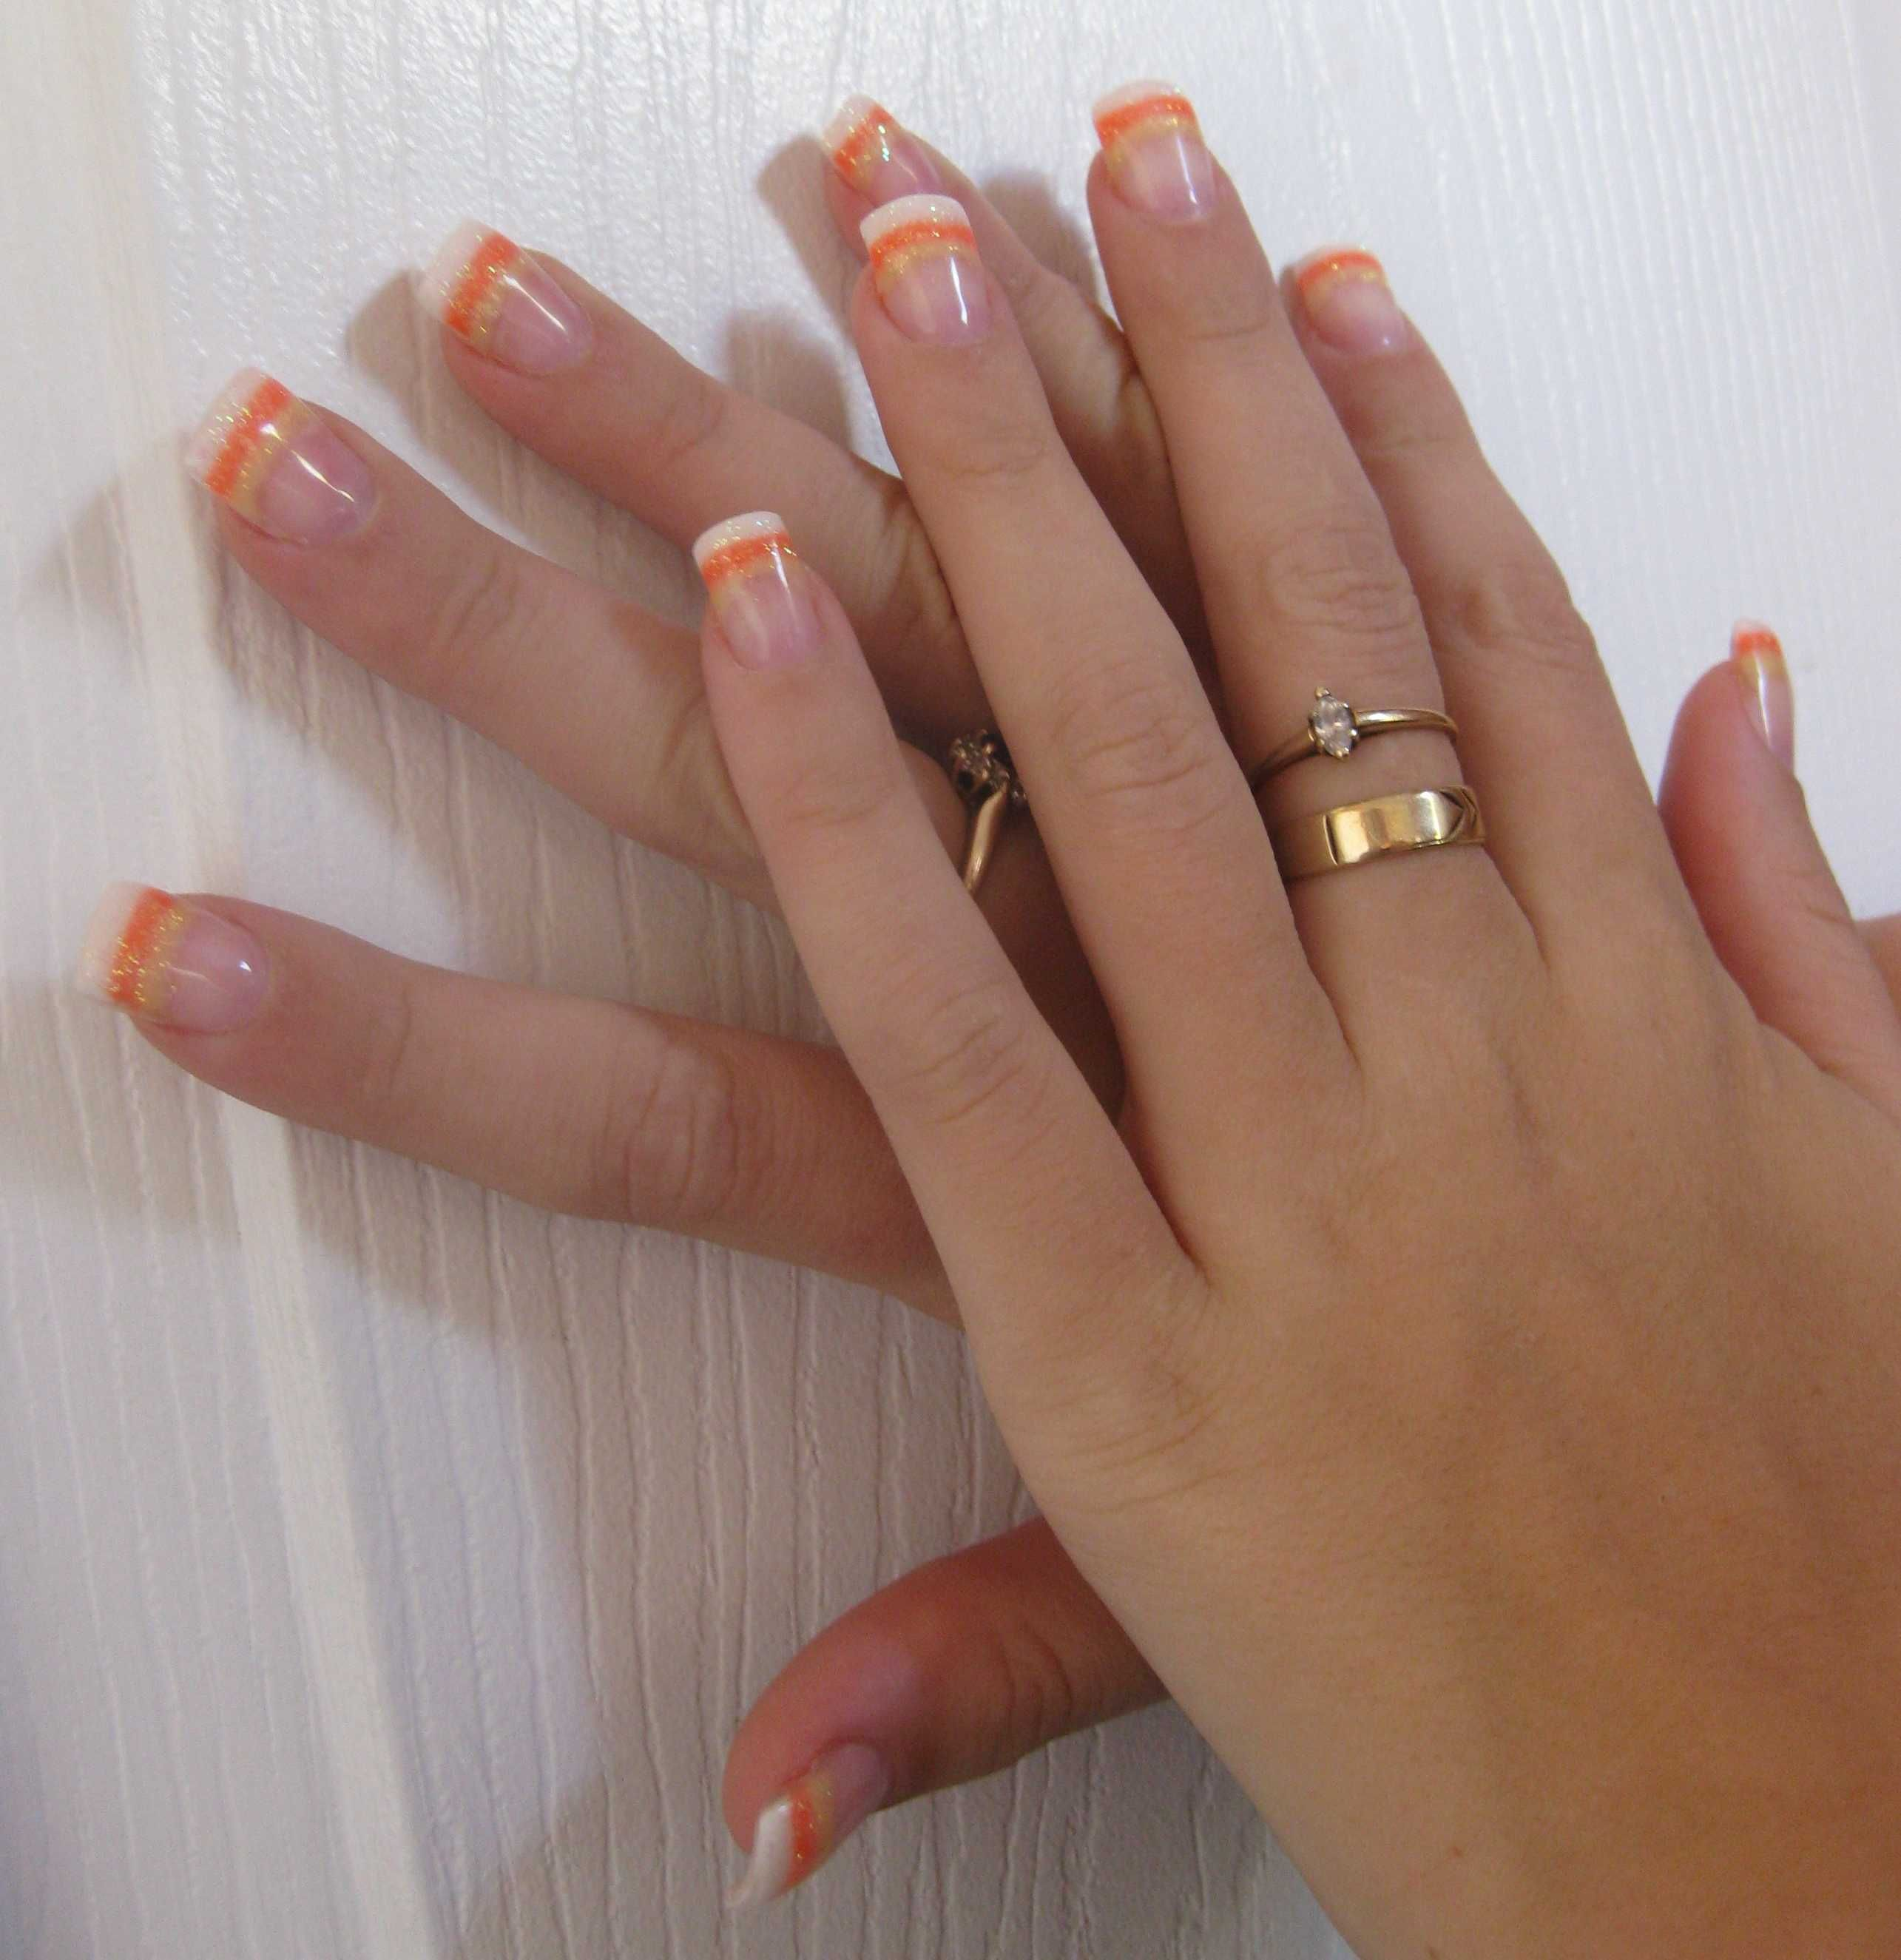 I want candycorn mani :) | Candy corn nails, Baby nails ...